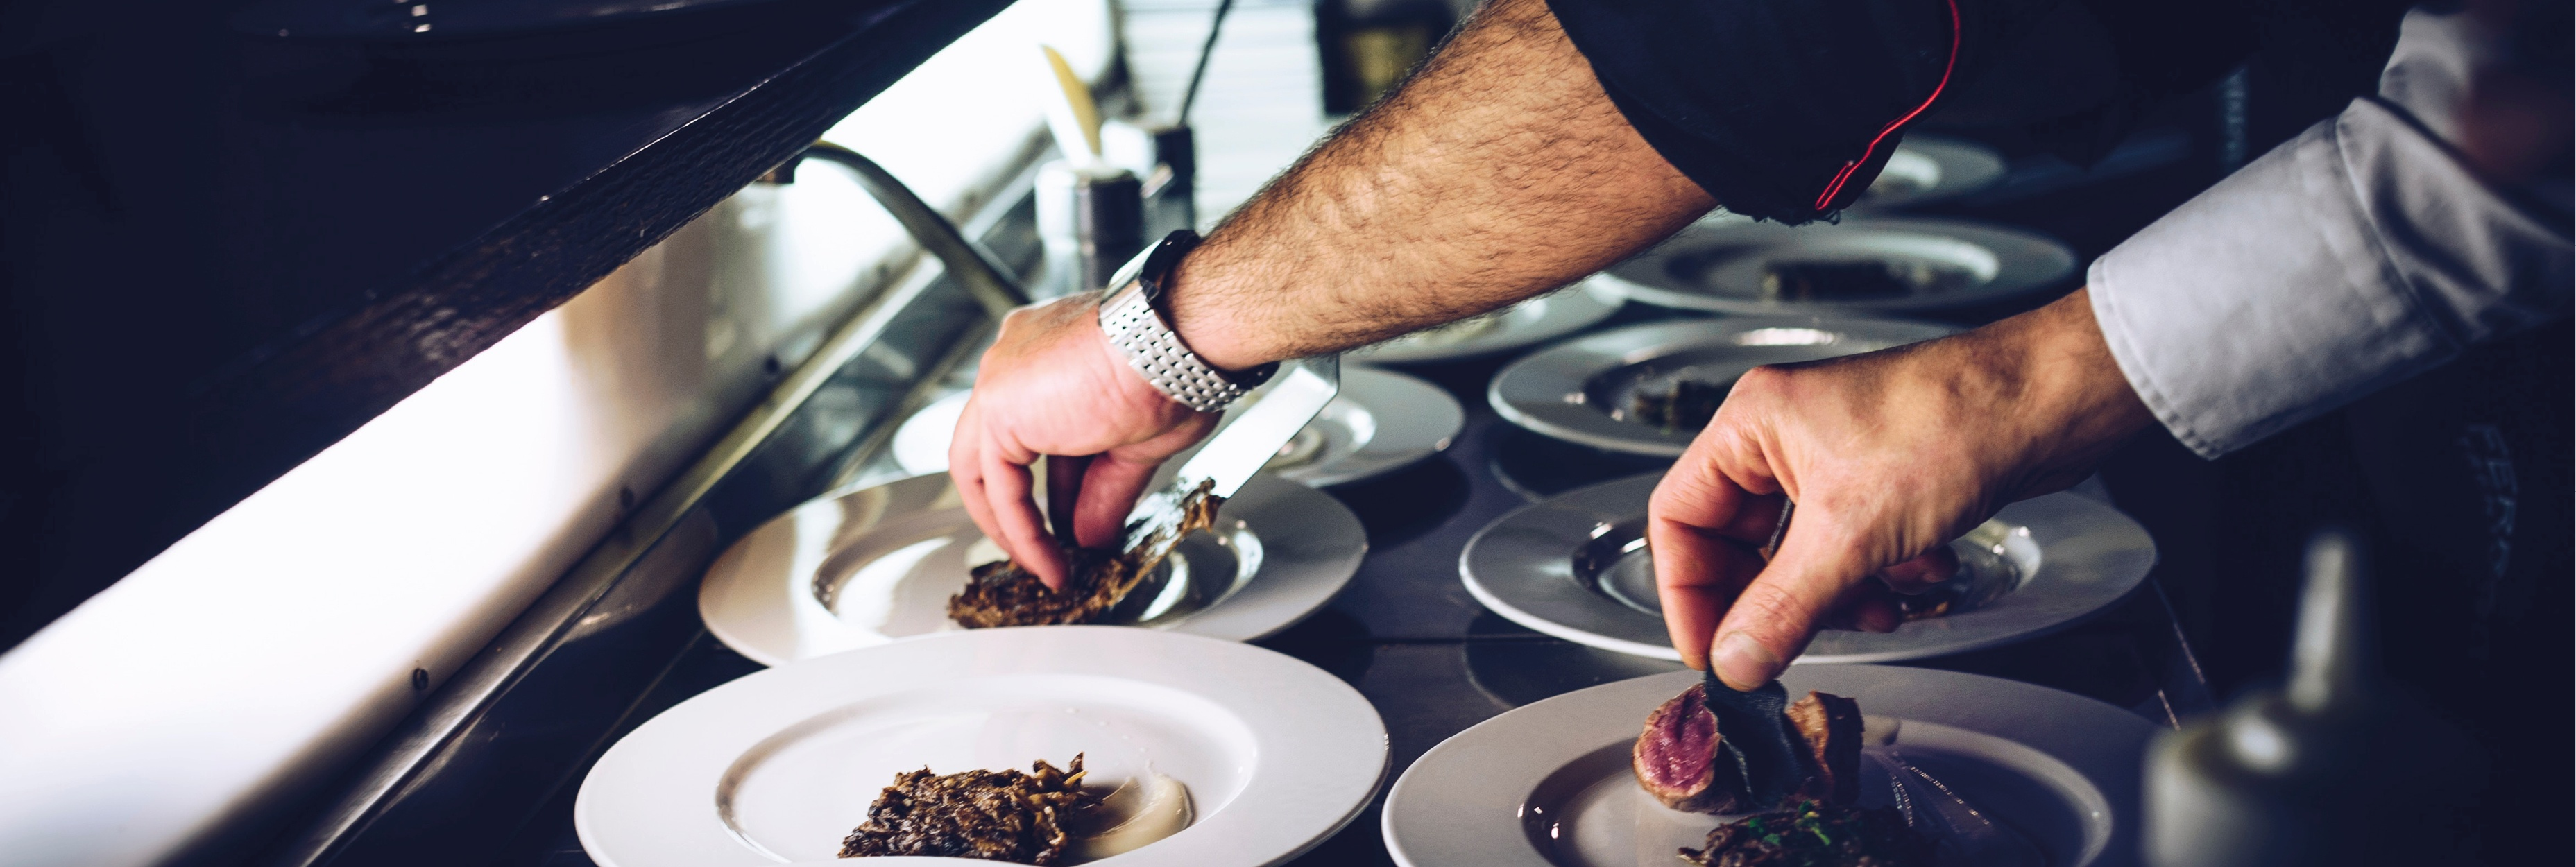 6 trends that will shape the hospitality and foodservice sector in 2018